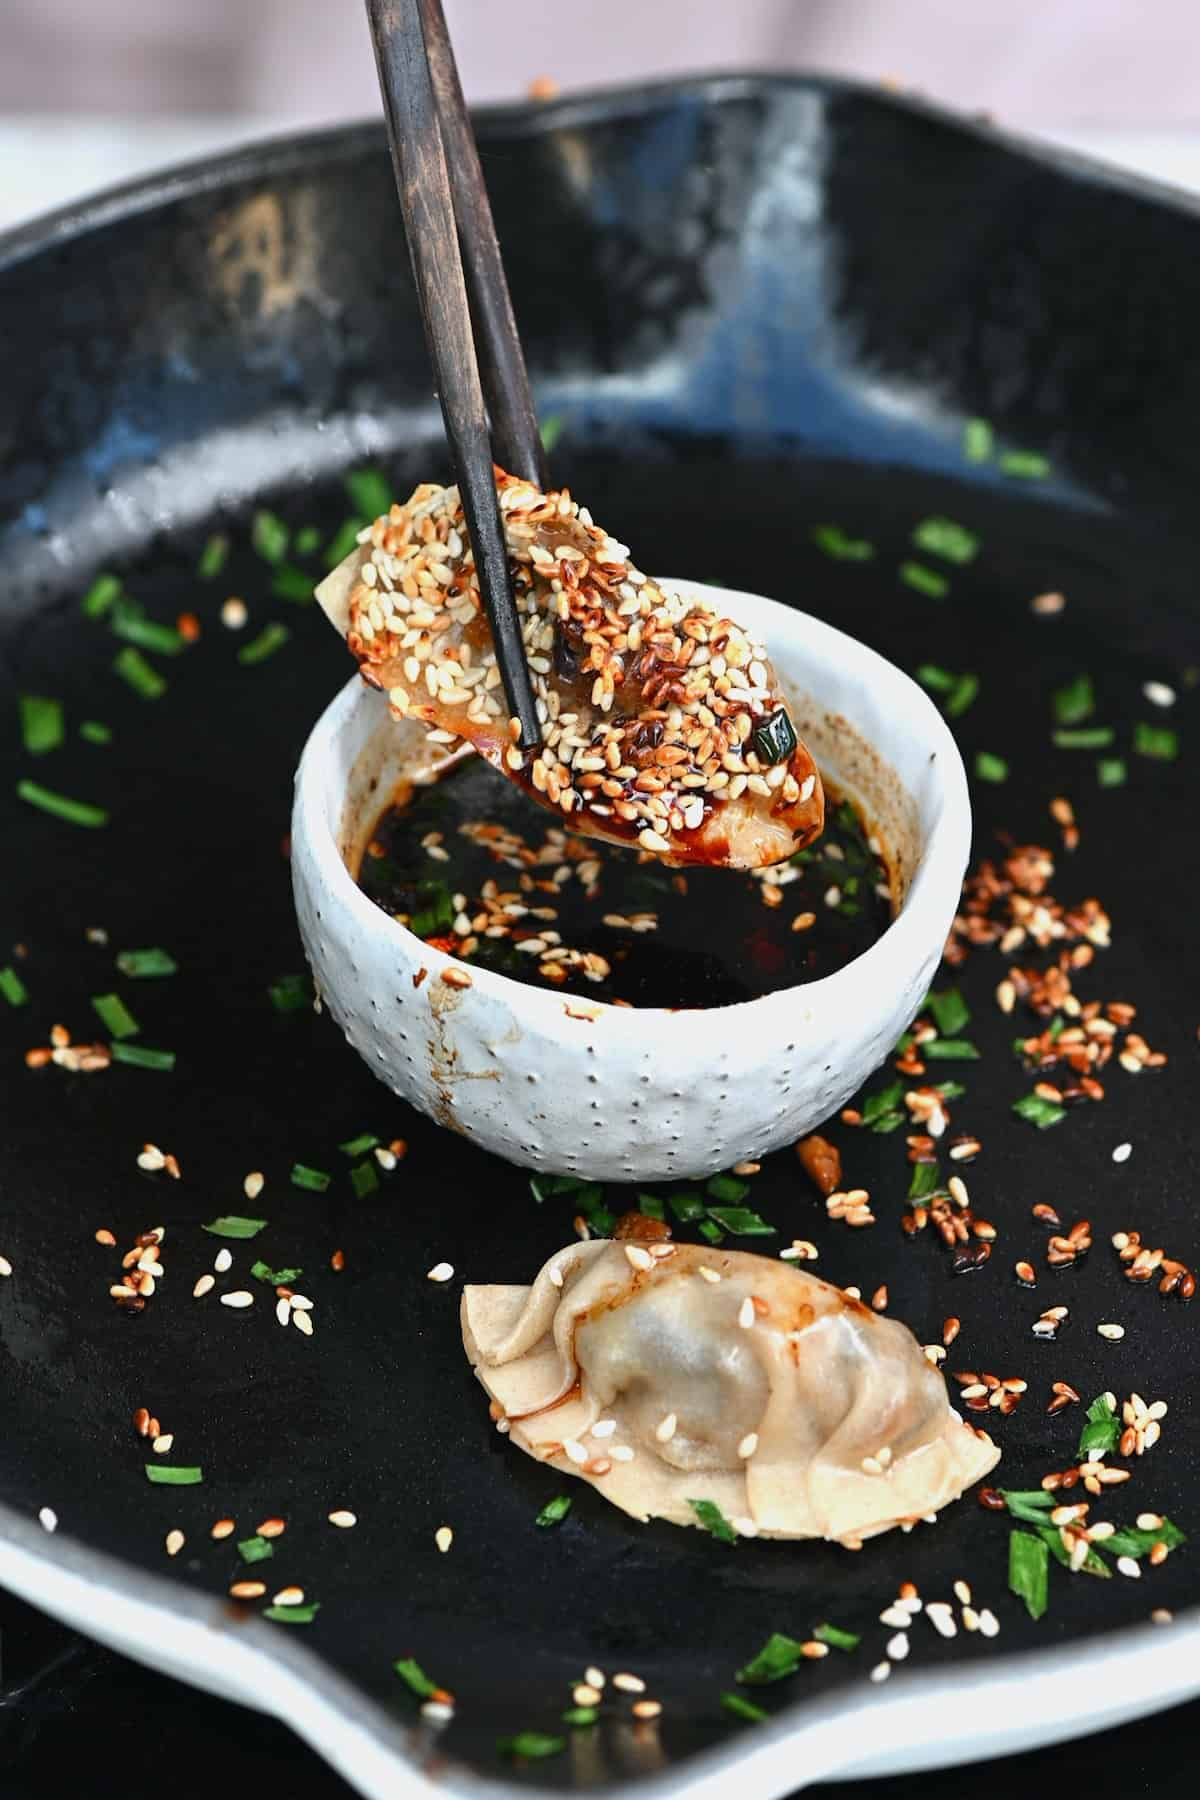 Potsticker in a dipping sauce